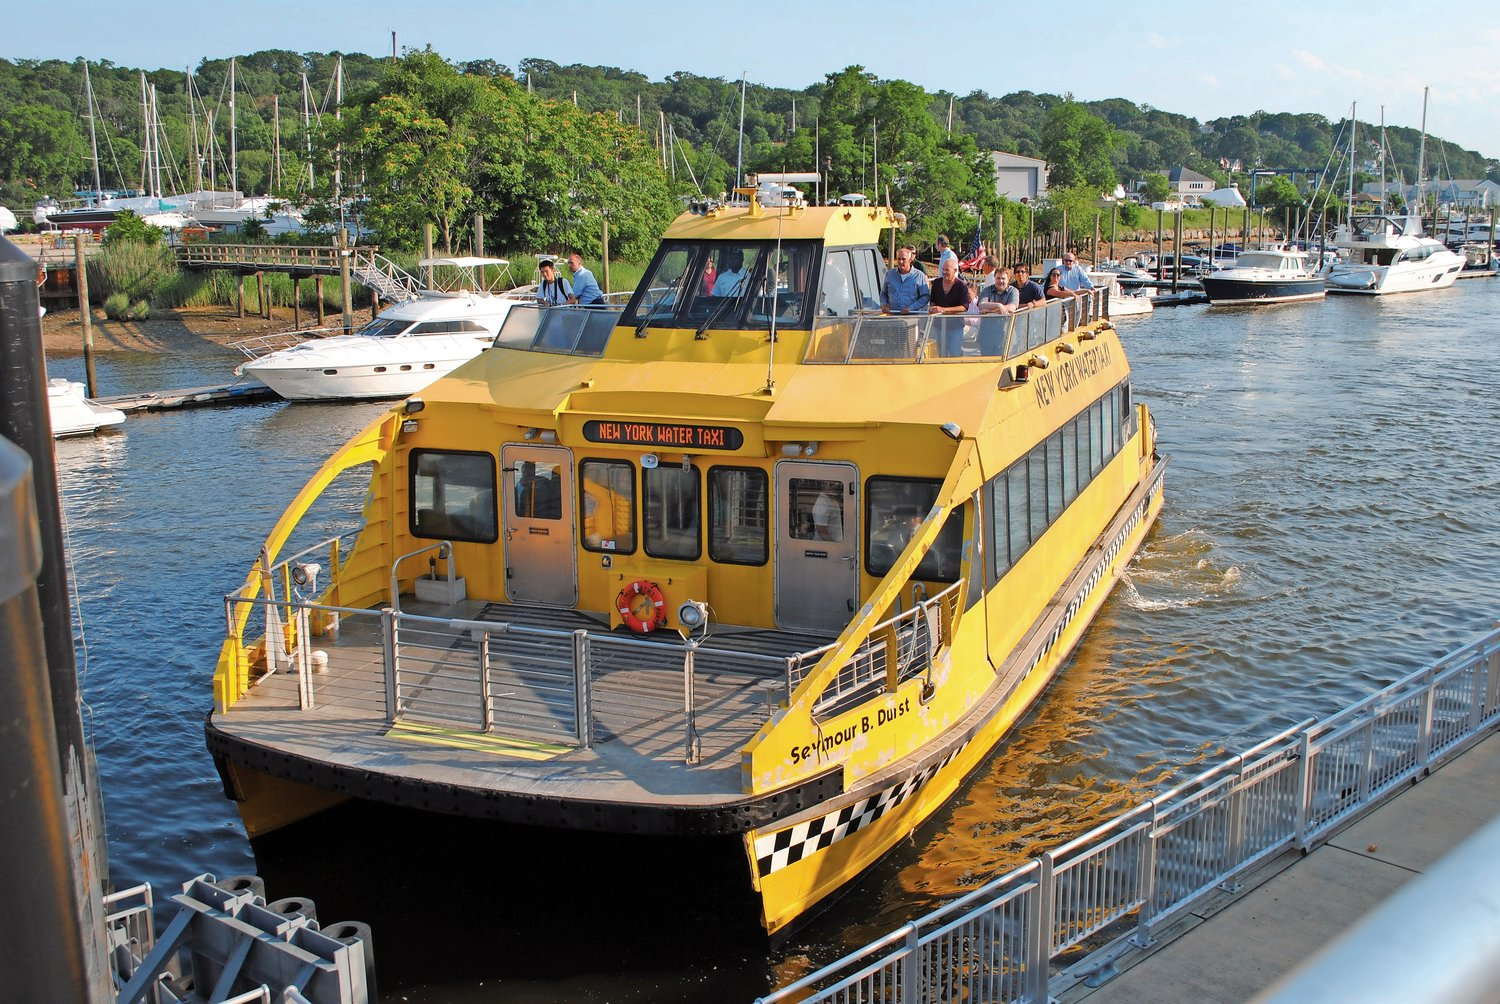 The deadline for the City of Glen Cove to have a fully operational ferry terminal has been pushed back to May 22, 2020.